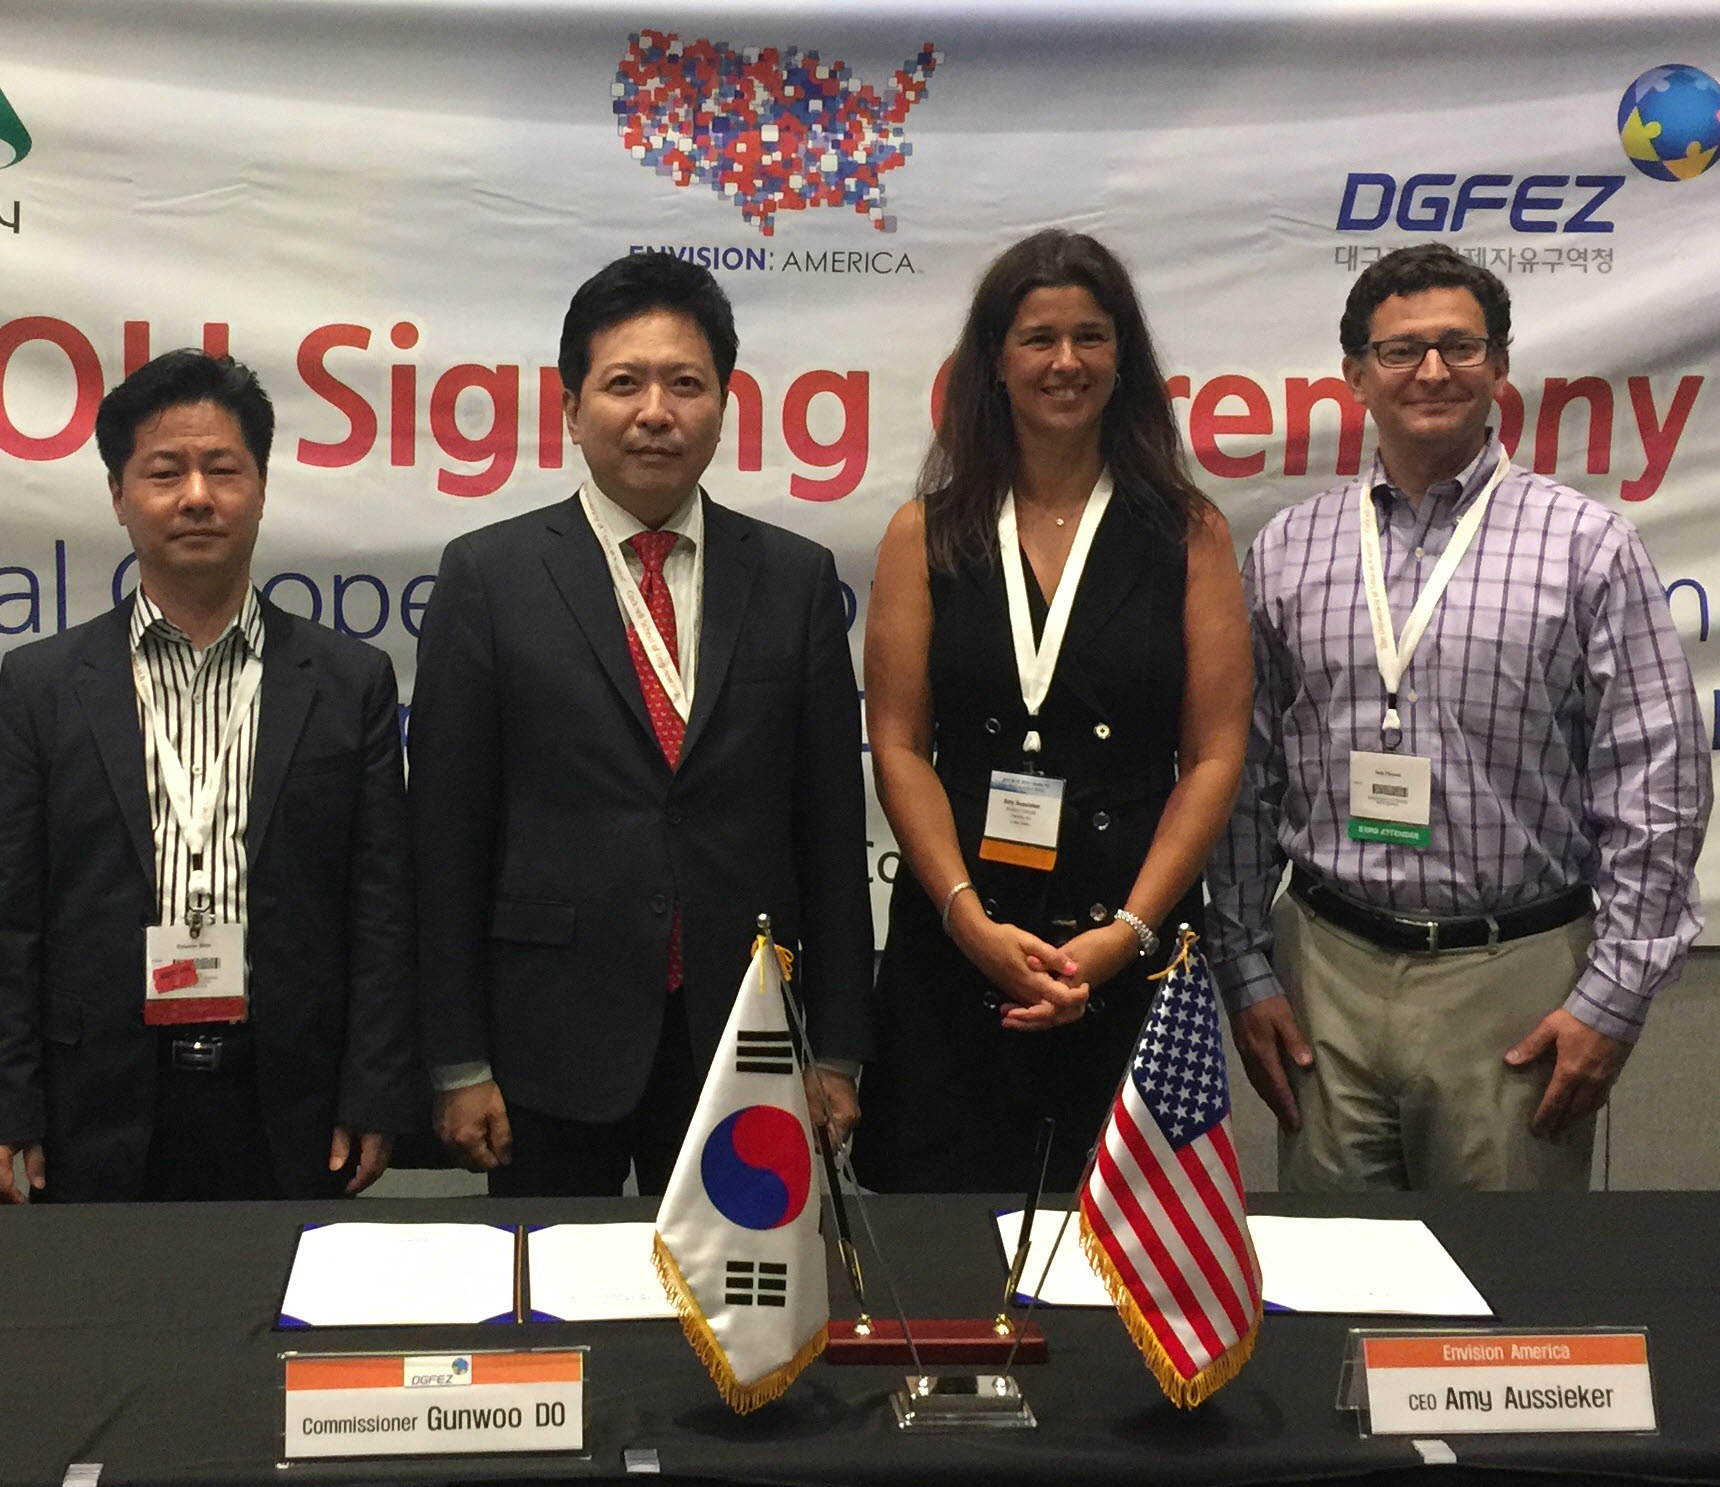 Leading Daegu to become a Smart City, signing MOU with Envis...